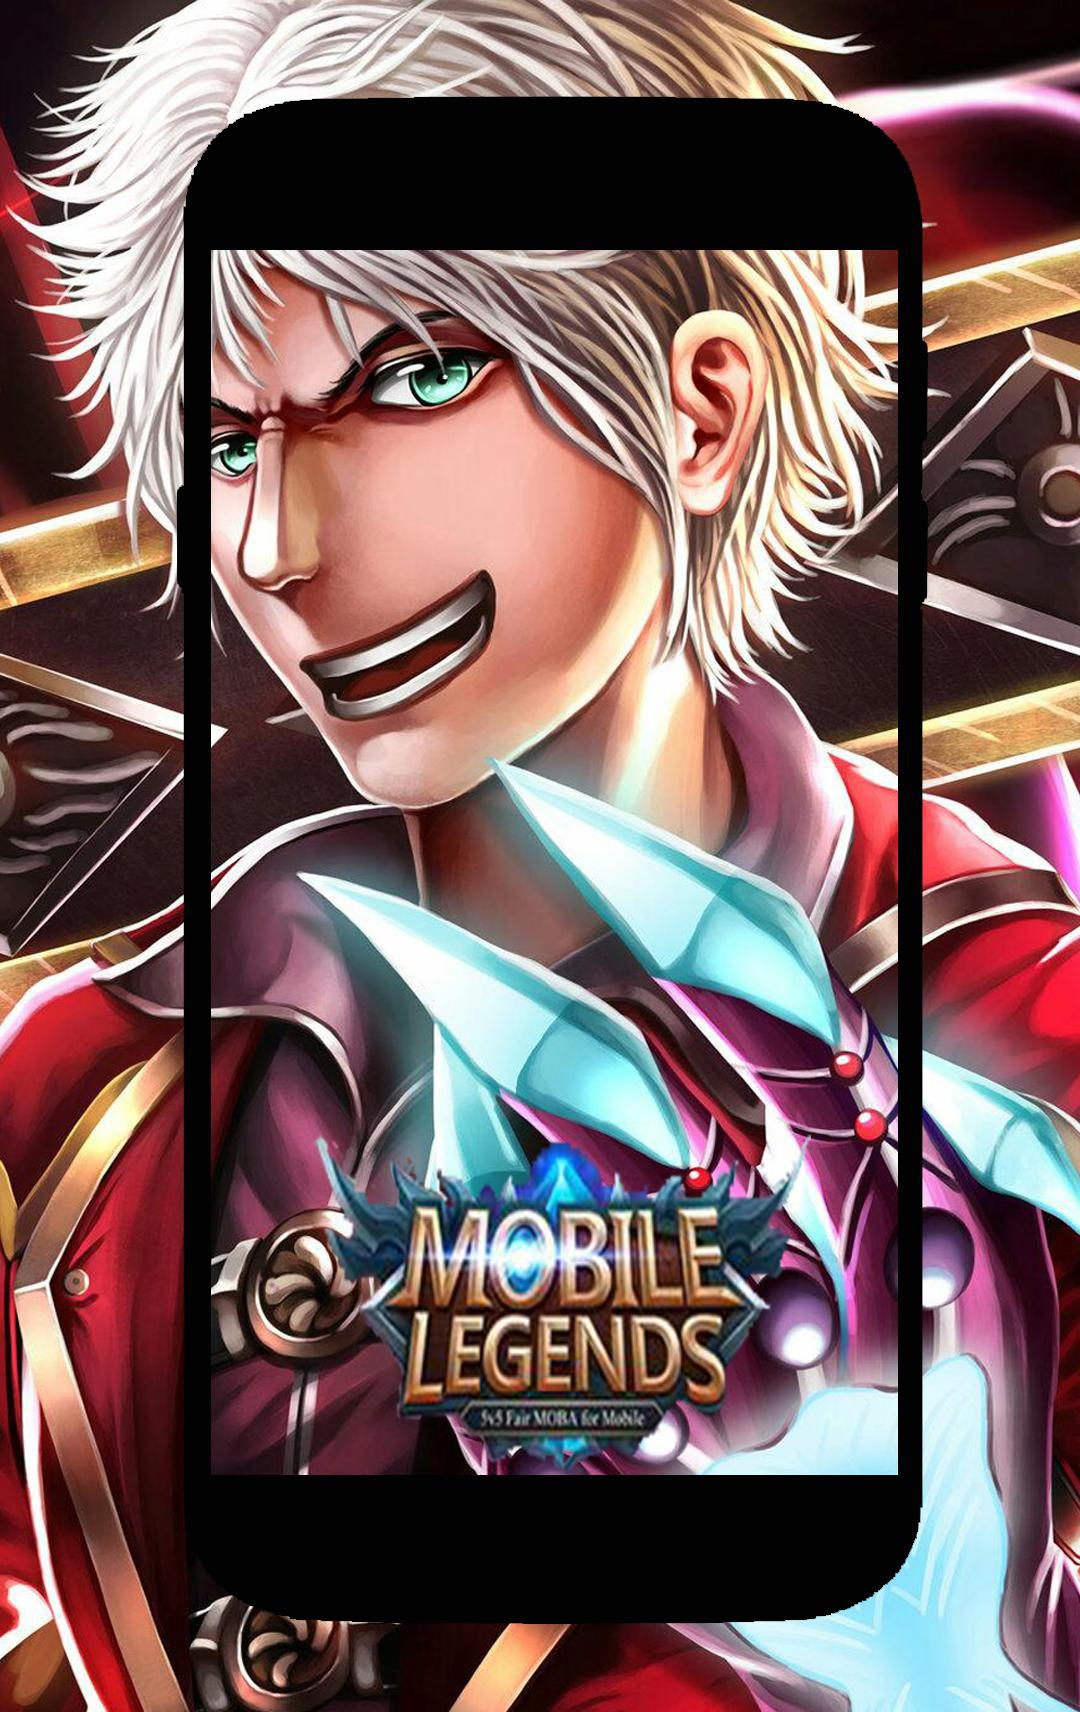 Mobile Legends Wallpaper Hd 2018 For Android Apk Download